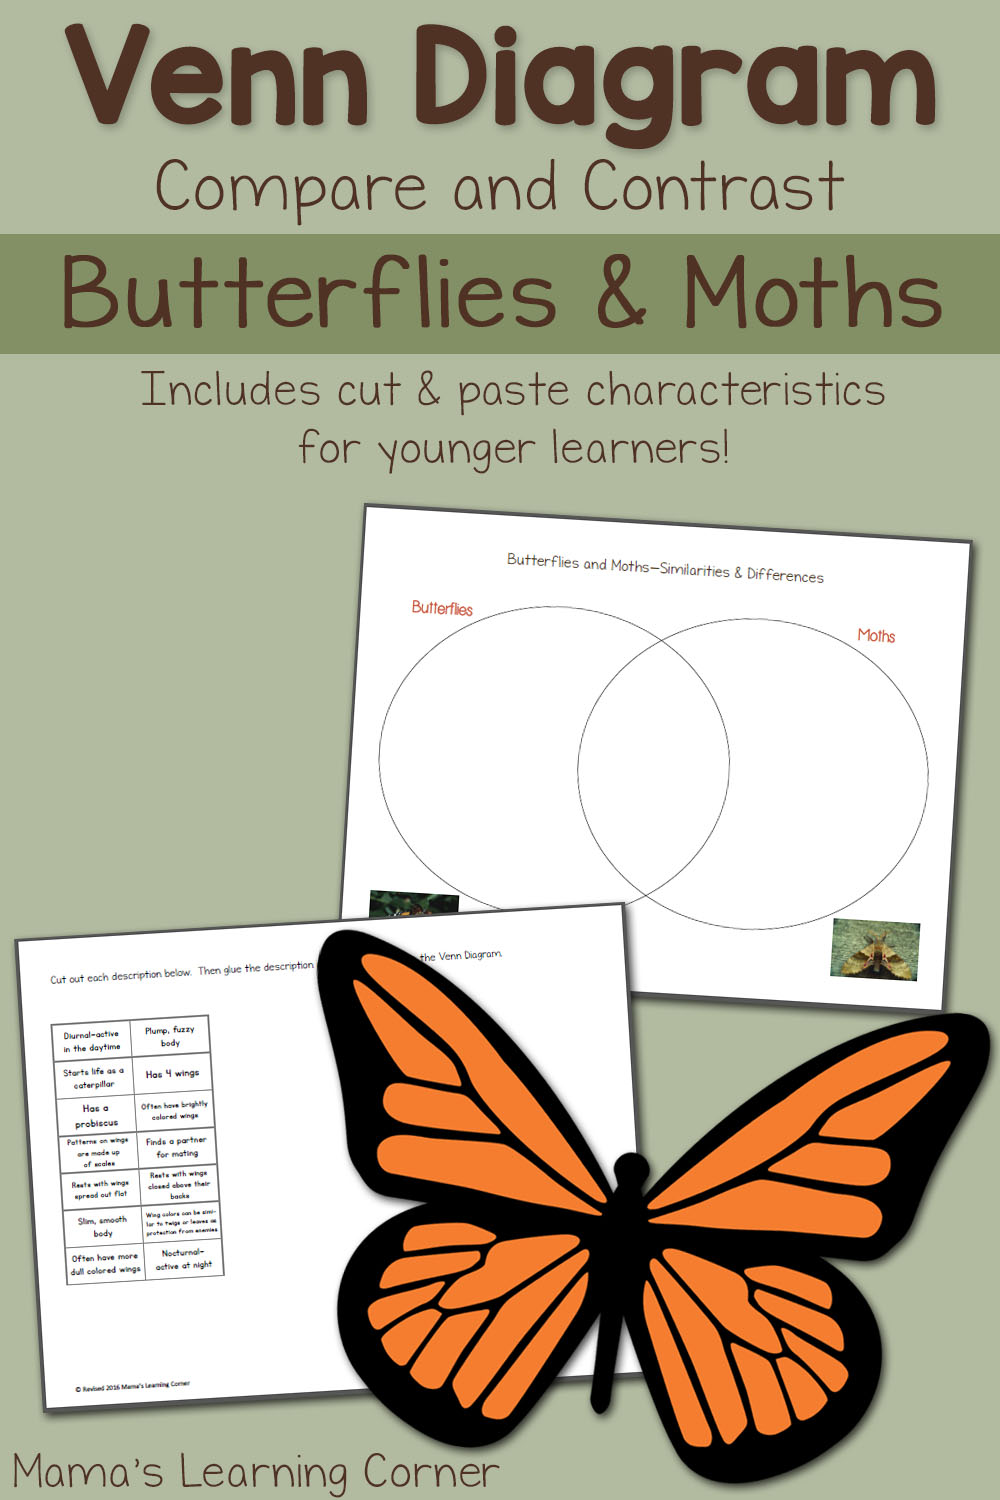 how to make a venn diagram what is the definition of moths and butterflies worksheet - mamas learning corner